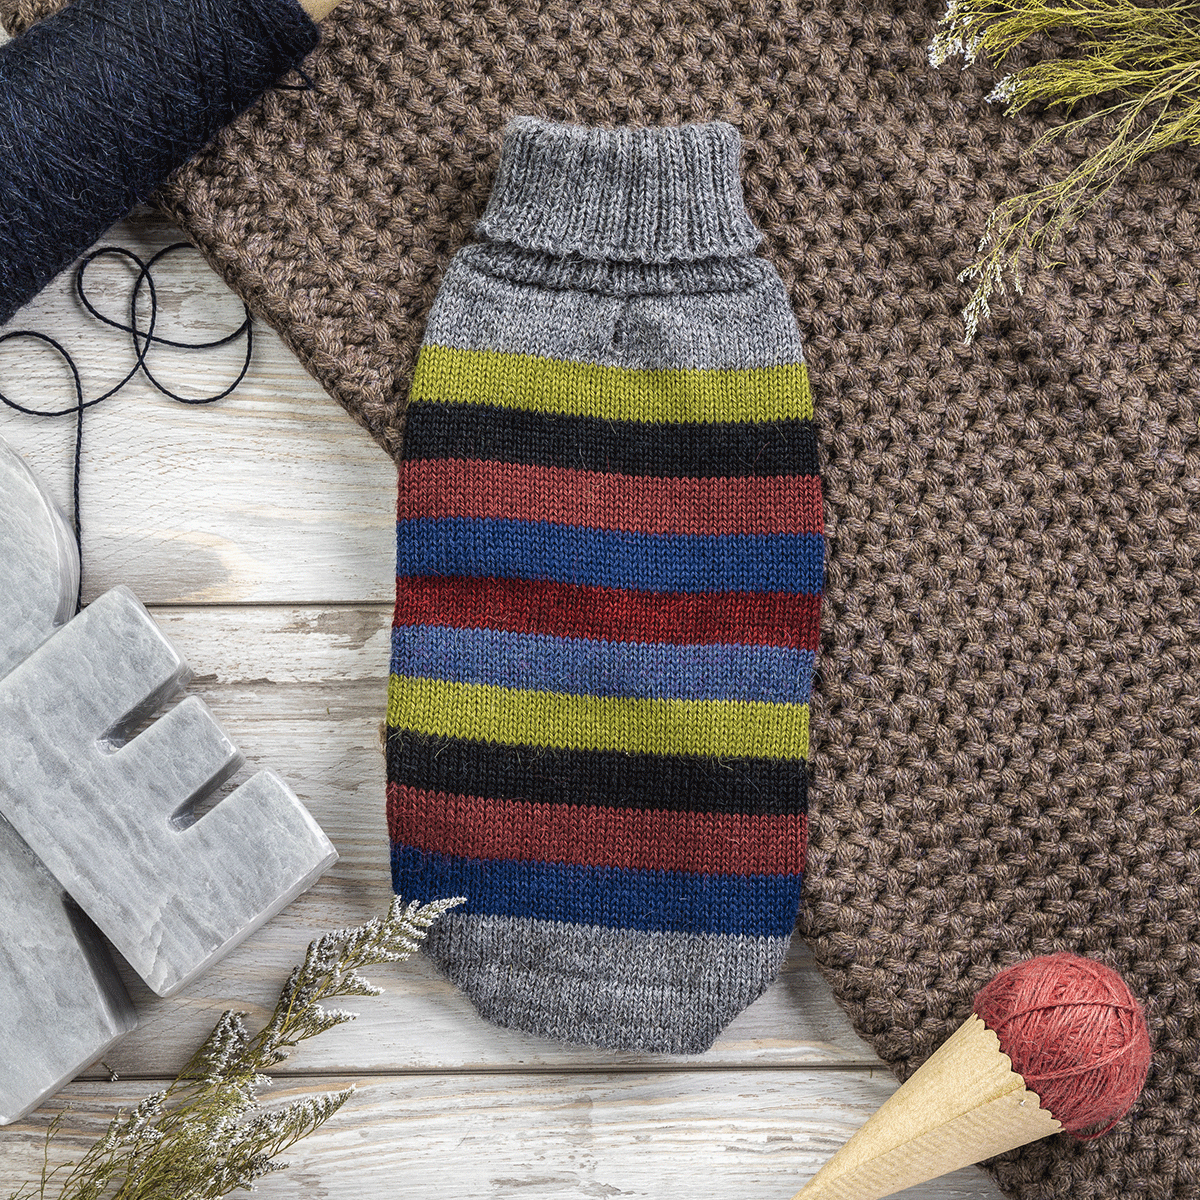 Yappy Stripes-Collection 2020: Alqo Wasi alpaca sweater for dogs composition